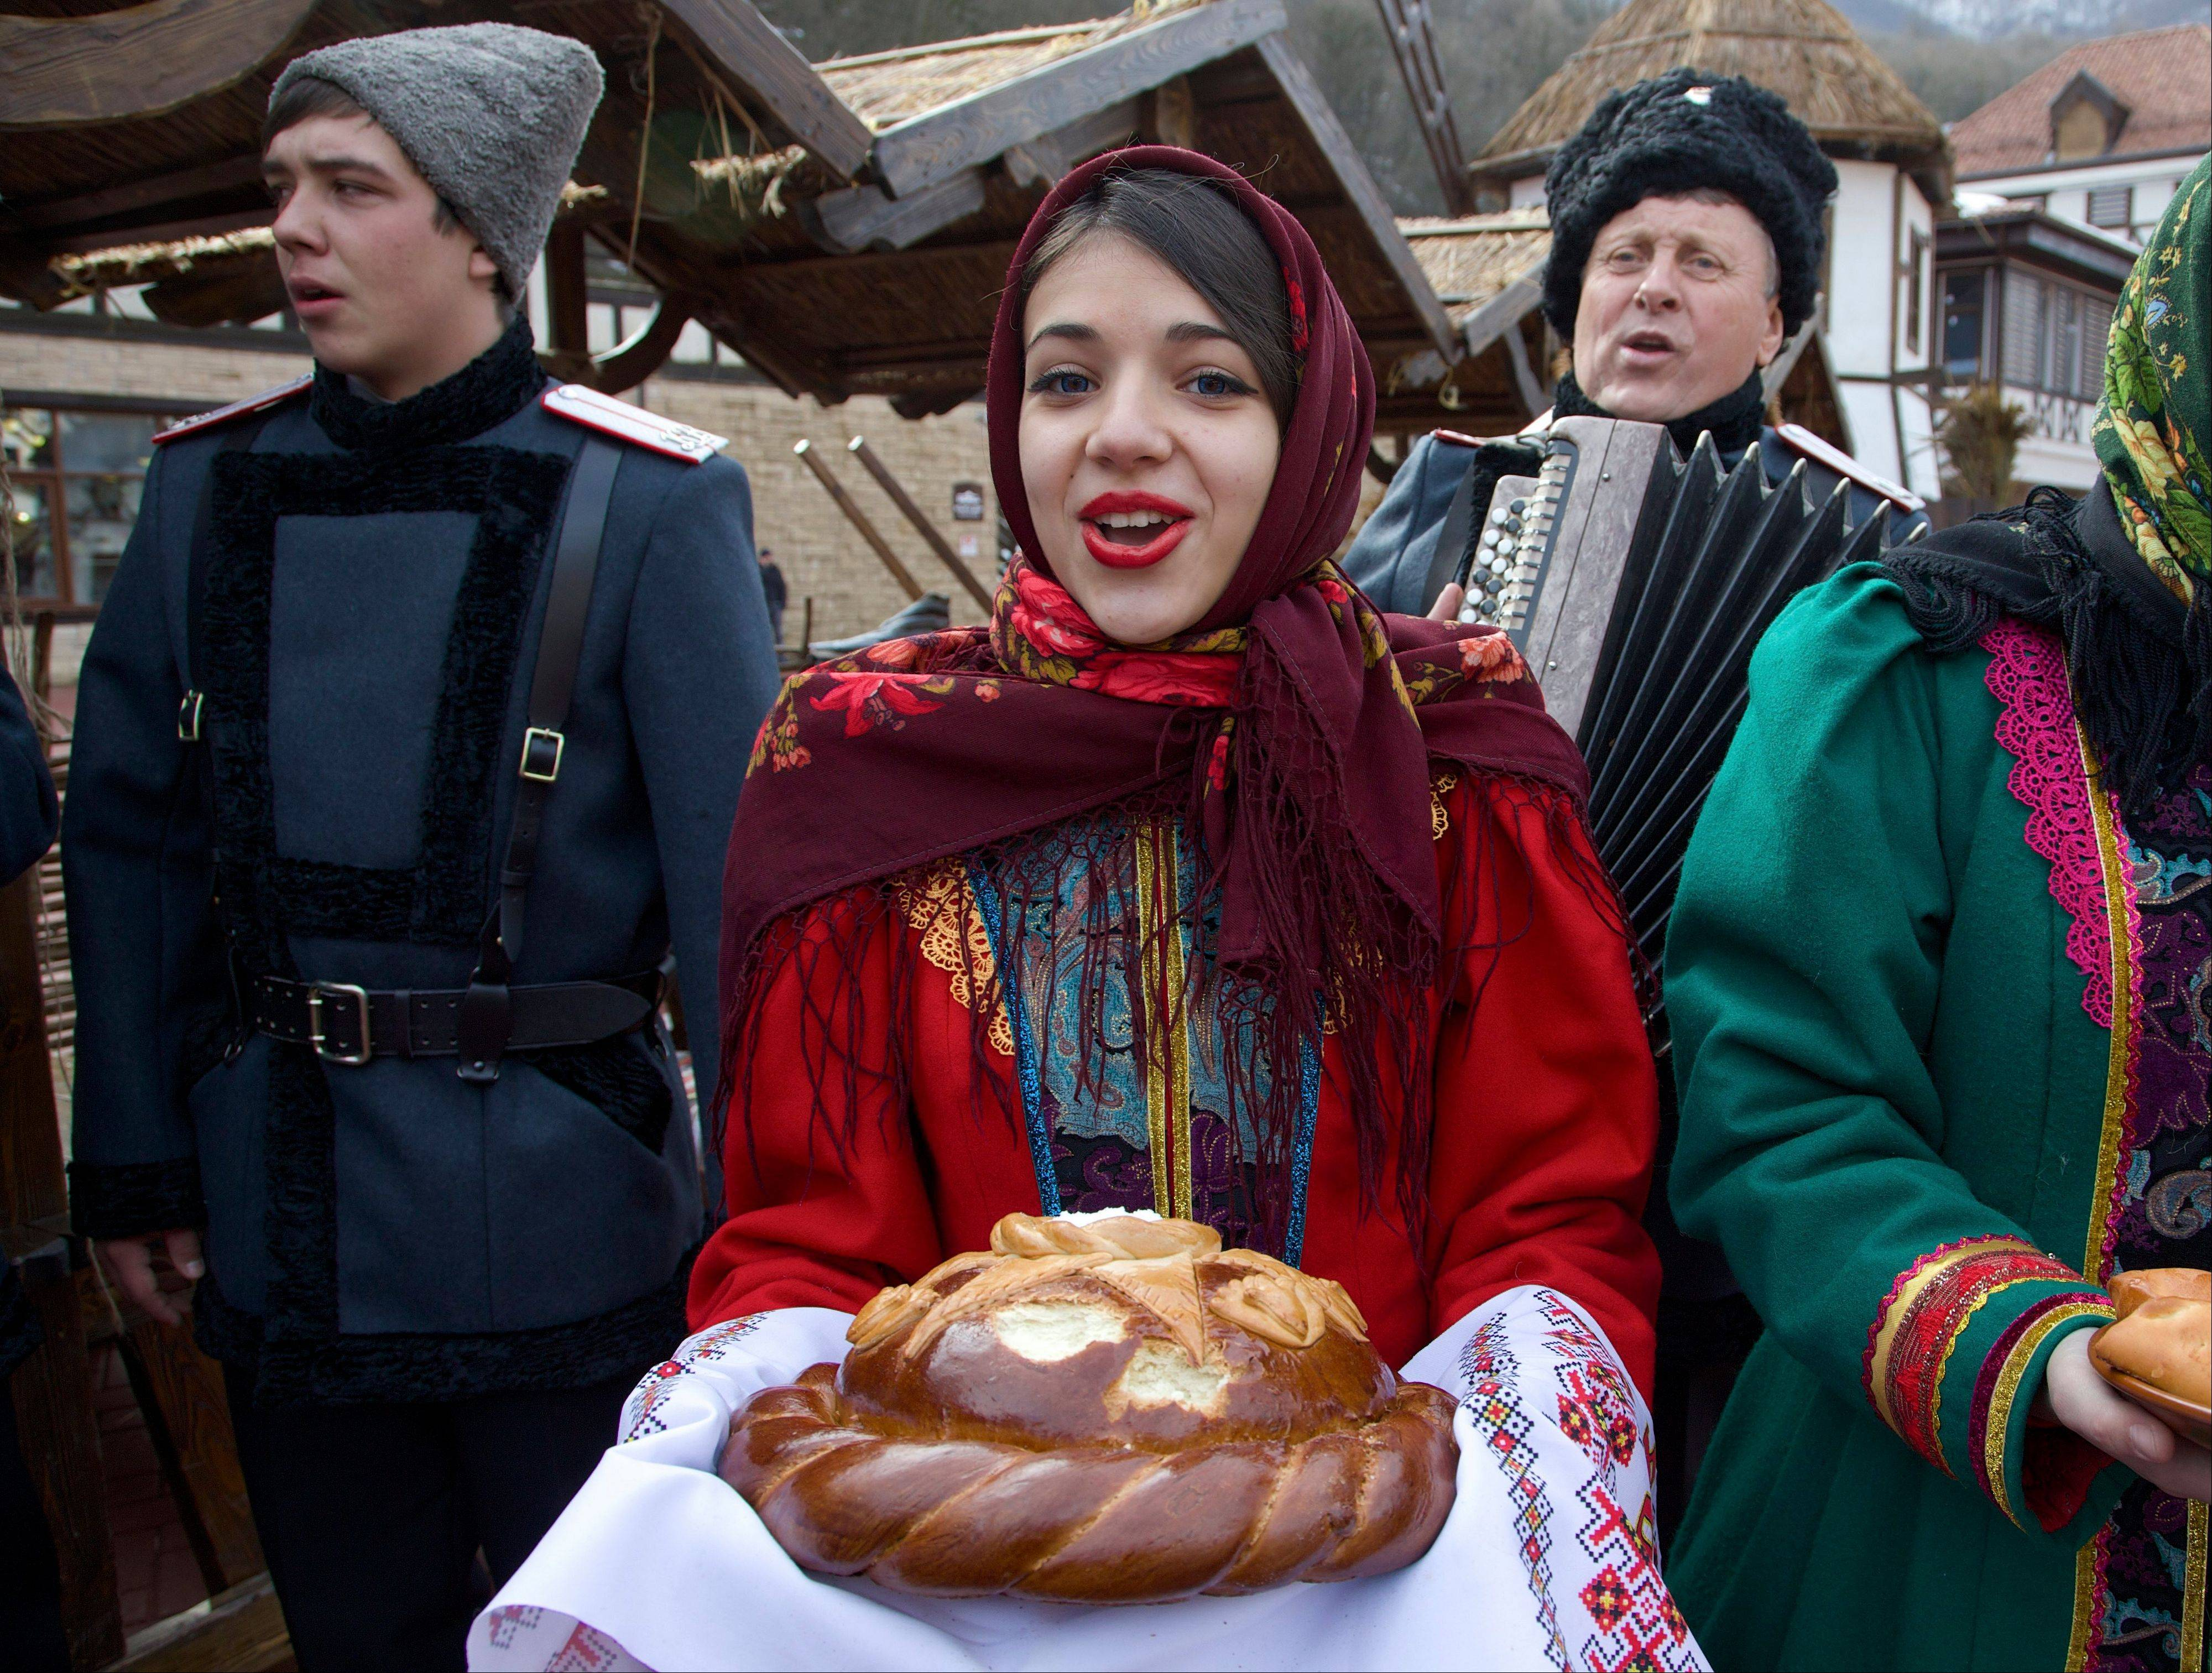 Artists dressed in folk costumes sing as they welcome guests at a street in Rosa Khutor, east of Sochi, Russia. Sochi has long been a choice destination for Russia's political elite. Joseph Stalin's summer residence in Zeleni Mys even features a wax mannequin of the dictator at his desk.